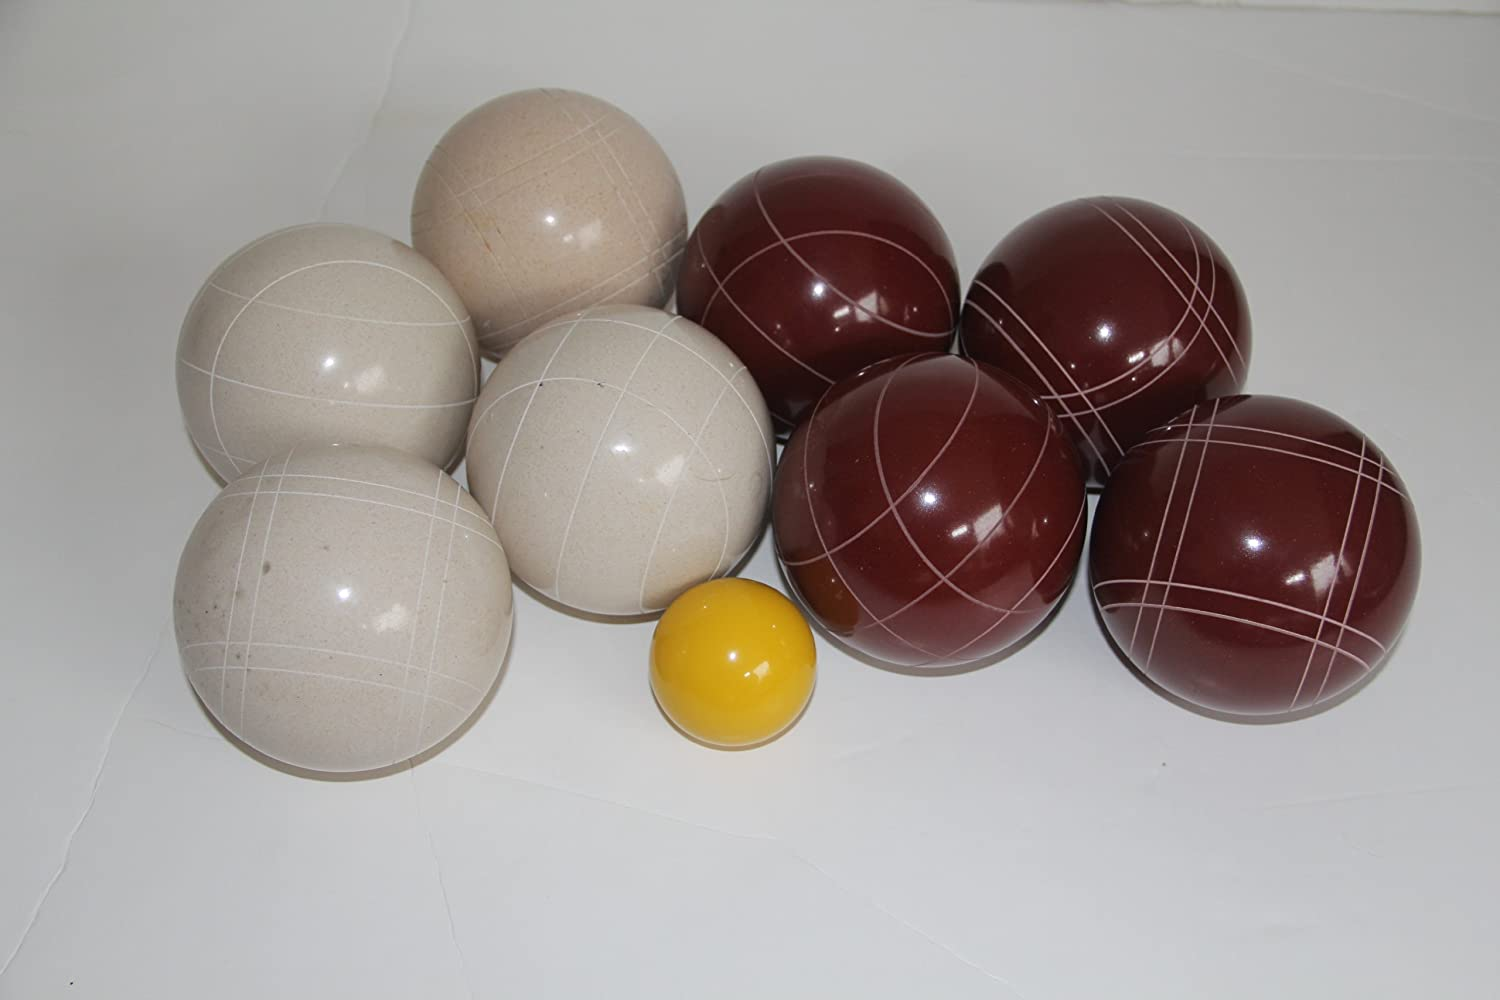 Premium Quality EPCO Tournament Bocce Set – 110mm Red and White Bocce Balls -… jetzt bestellen